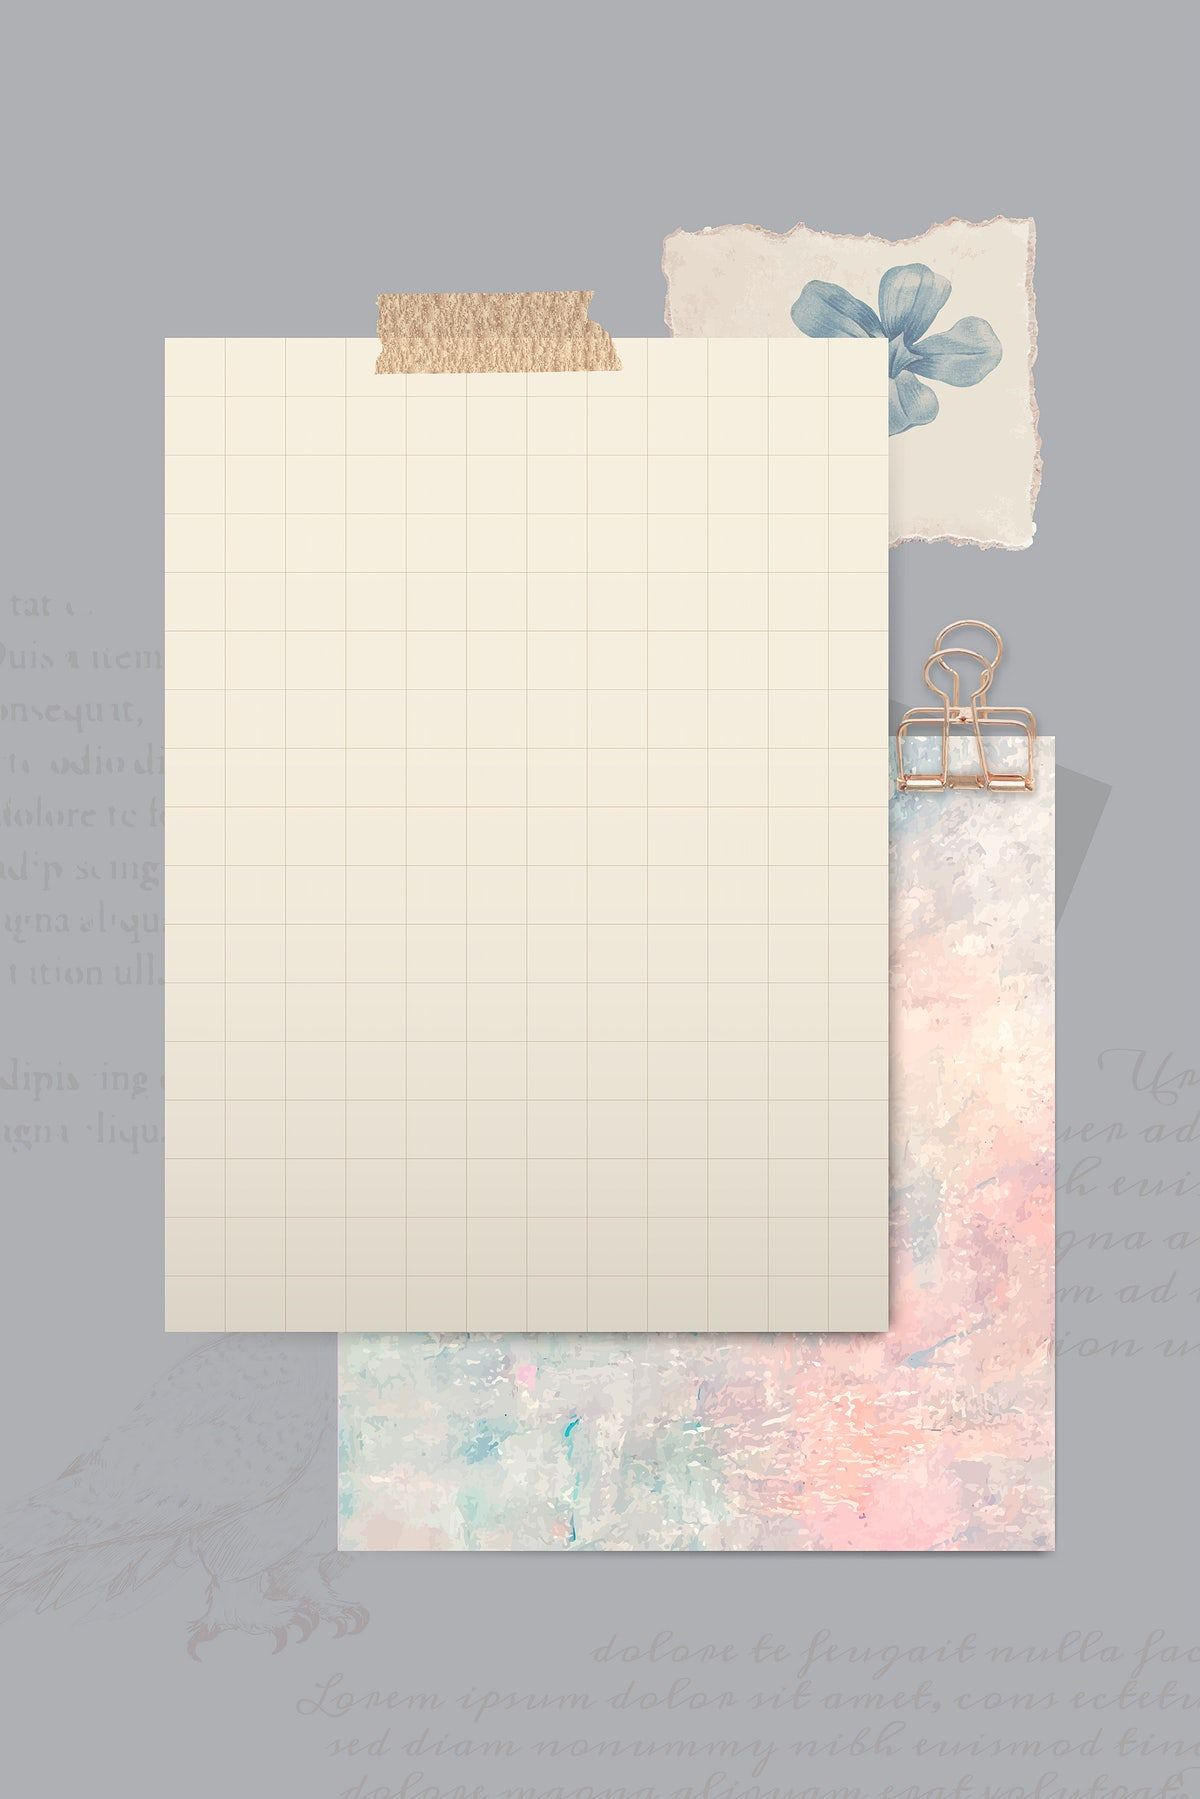 Download premium vector of Brown paper with Washi tapes template vector by Kul about bullet journal, journal background design, Journal wallpaper, notebook pages, and pastel background 2035291